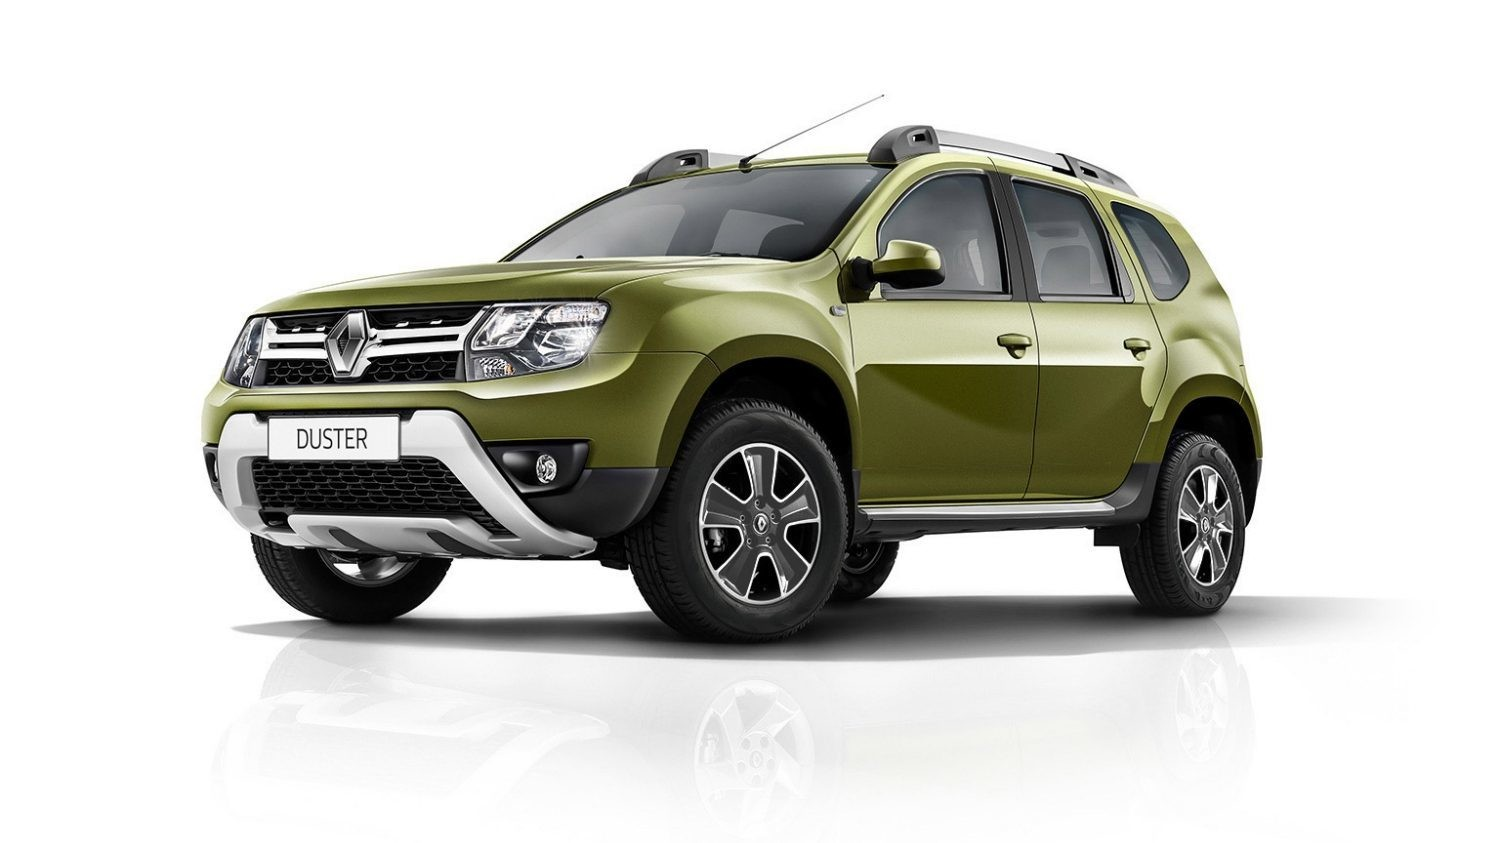 Renault Duster 1.5DCI SID305 2259R 6972R 8049R 10339578AA